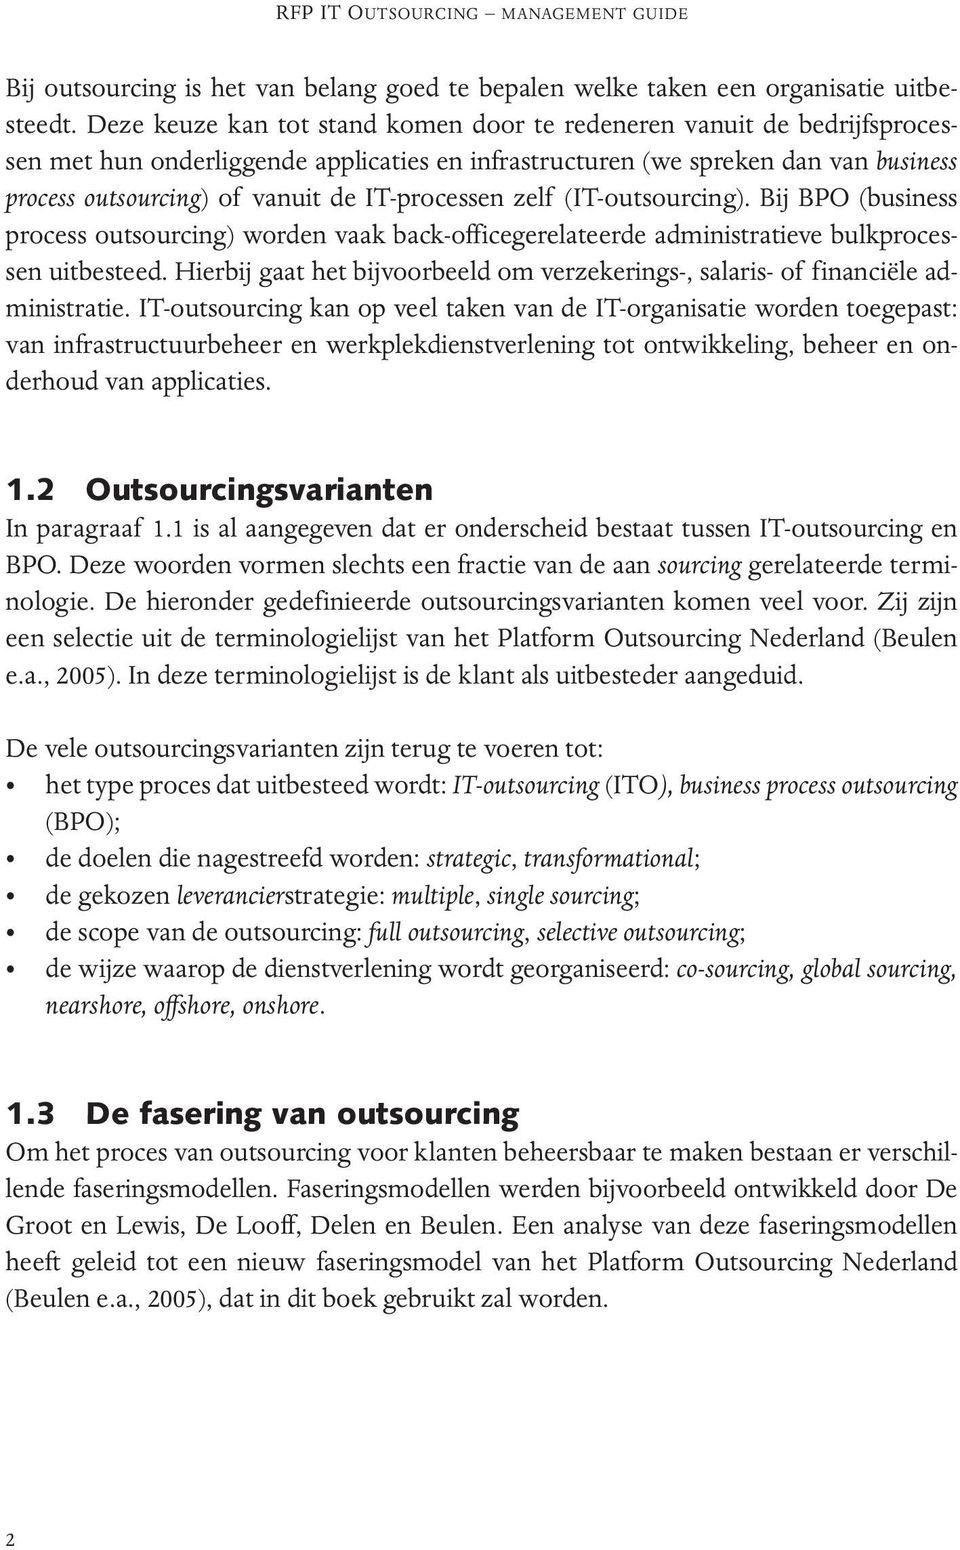 IT-processen zelf (IT-outsourcing ). Bij BPO (business process outsourcing) worden vaak back-officegerelateerde administratieve bulkprocessen uitbesteed.